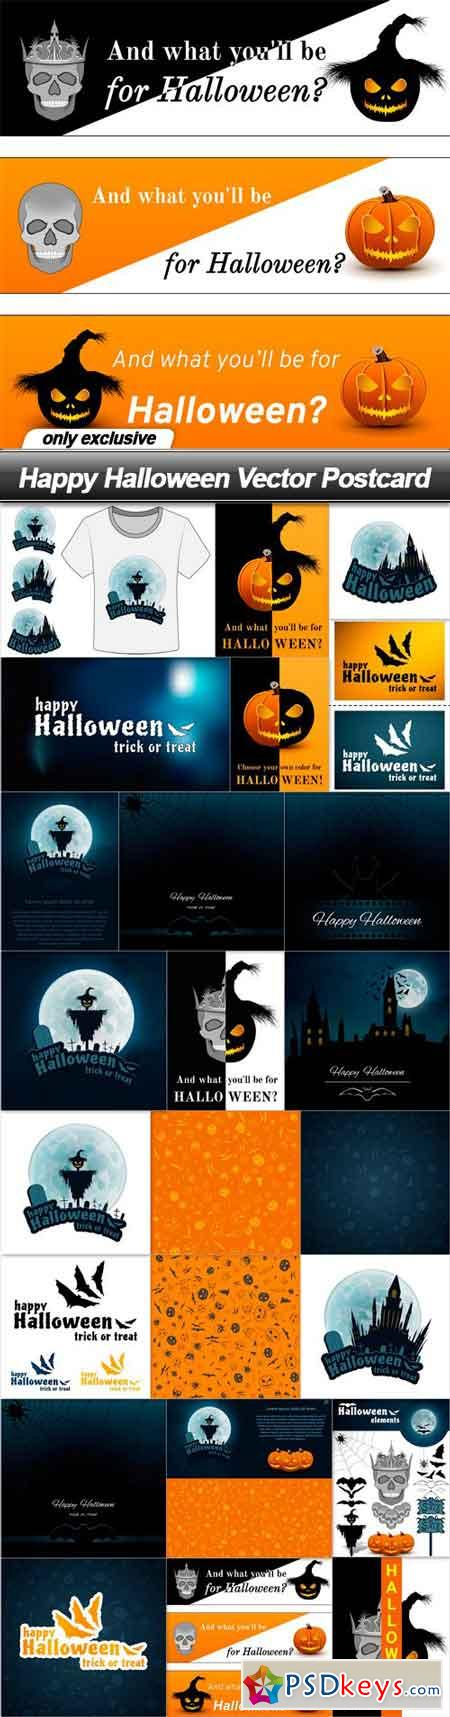 Happy Halloween Vector Postcard - 24 EPS